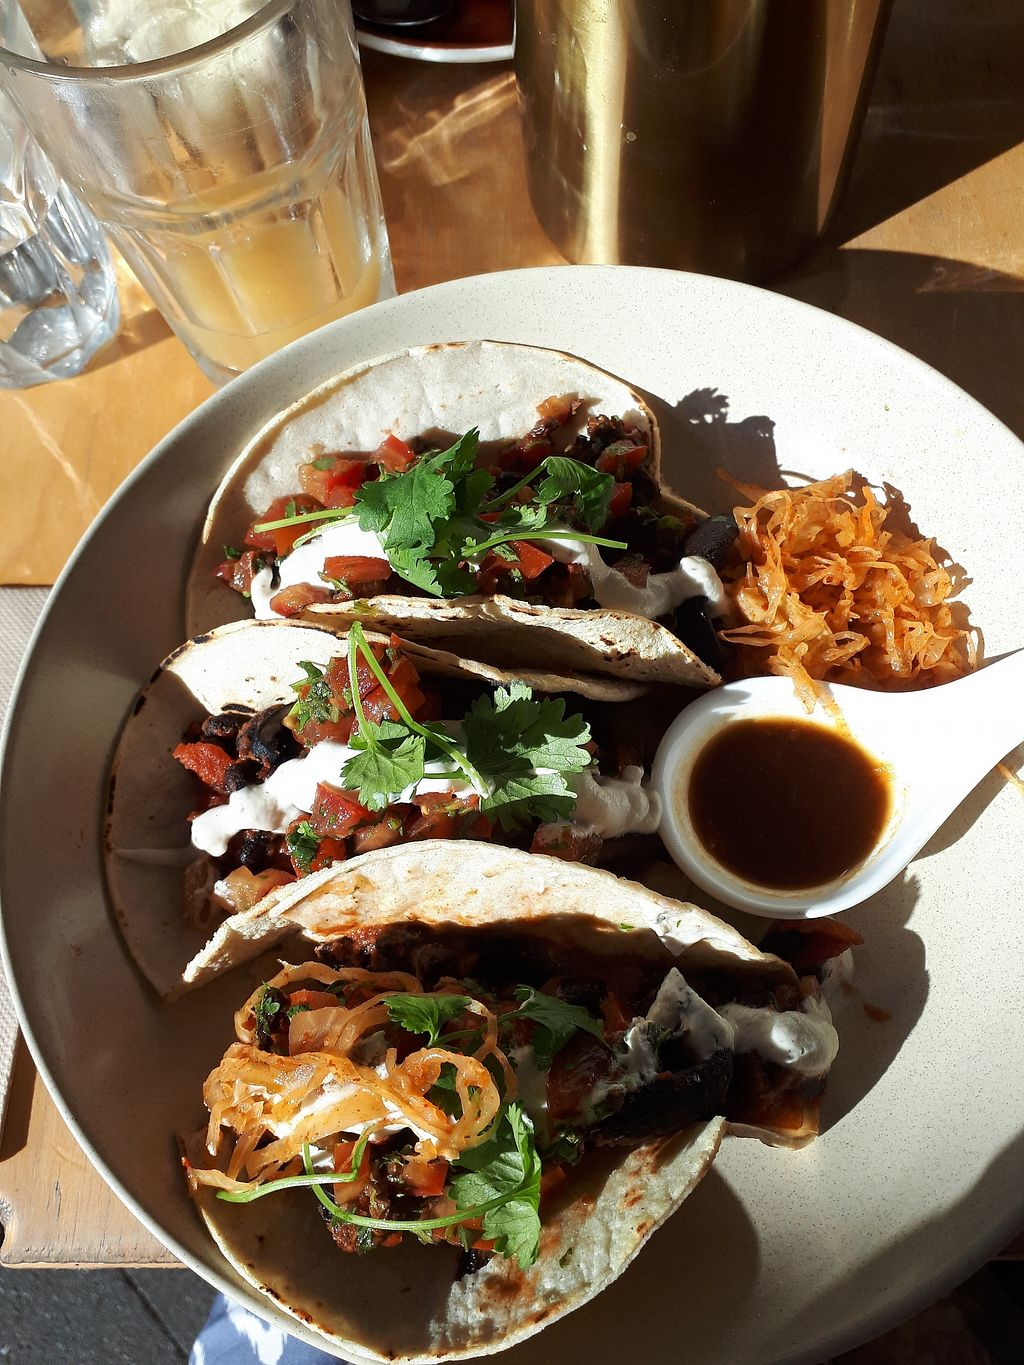 """Photo of Chantal Organics  by <a href=""""/members/profile/Diz%20Parker"""">Diz Parker</a> <br/>Black bean tacos for breakfast <br/> February 16, 2018  - <a href='/contact/abuse/image/25065/360090'>Report</a>"""